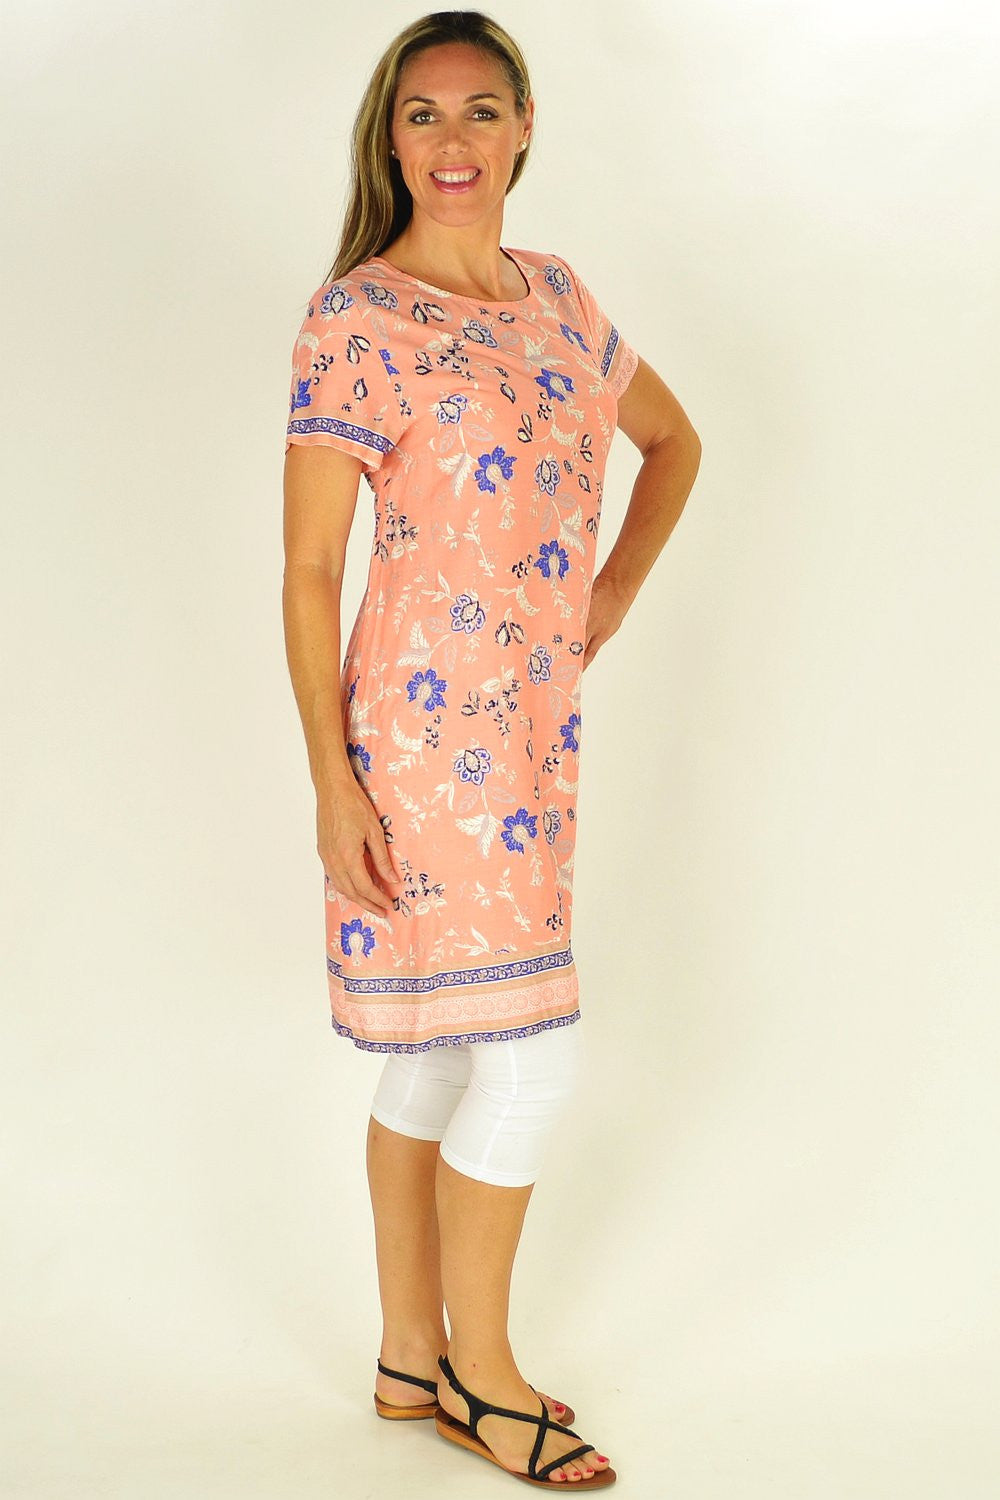 Apricot Floral Tunic | I Love Tunics | Tunic Tops | Tunic | Tunic Dresses  | womens clothing online